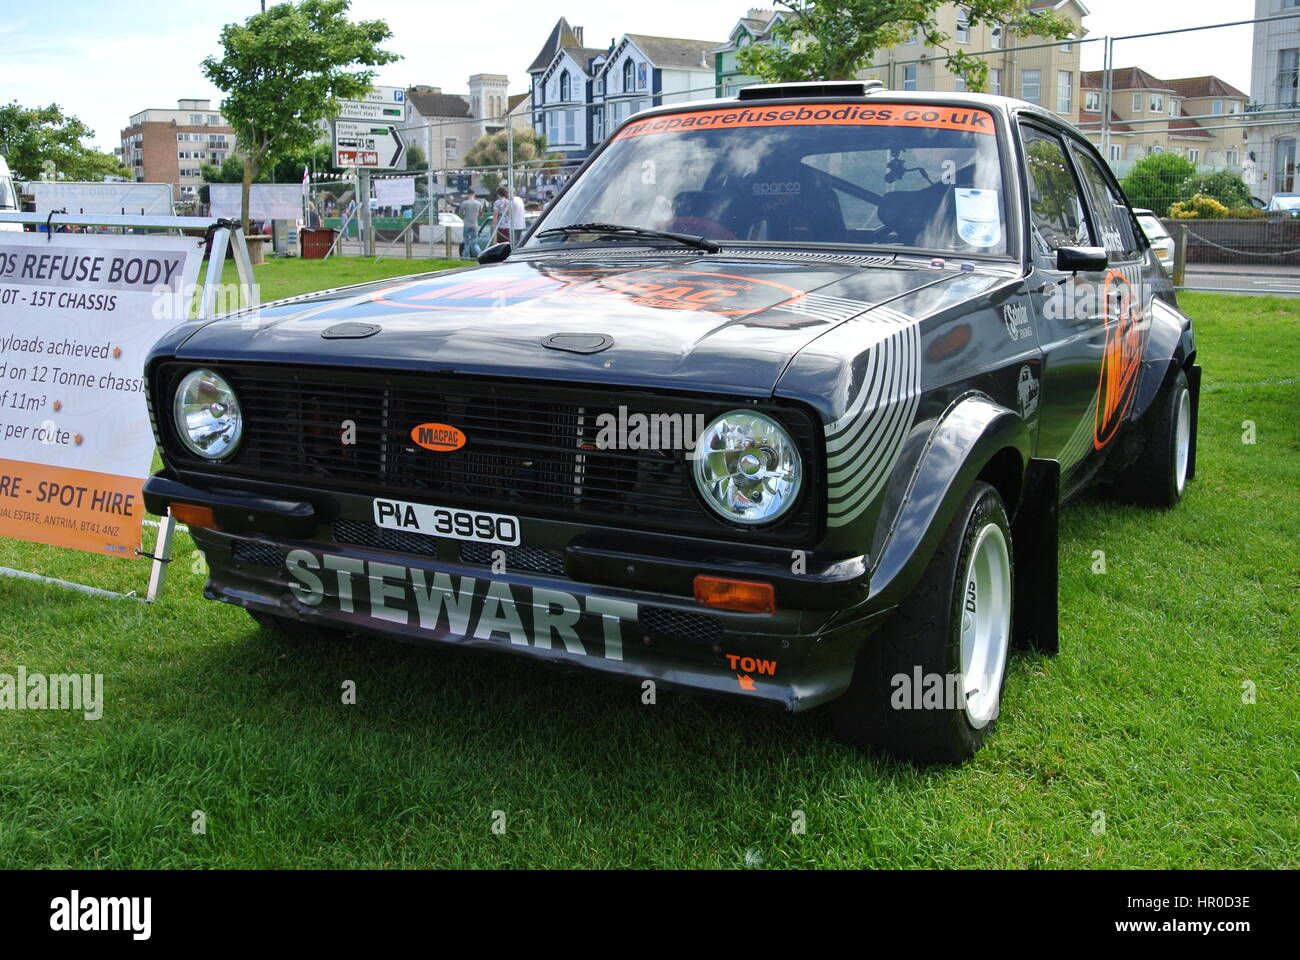 Ford Escort MK2 rally car parked up on display Stock Photo ...